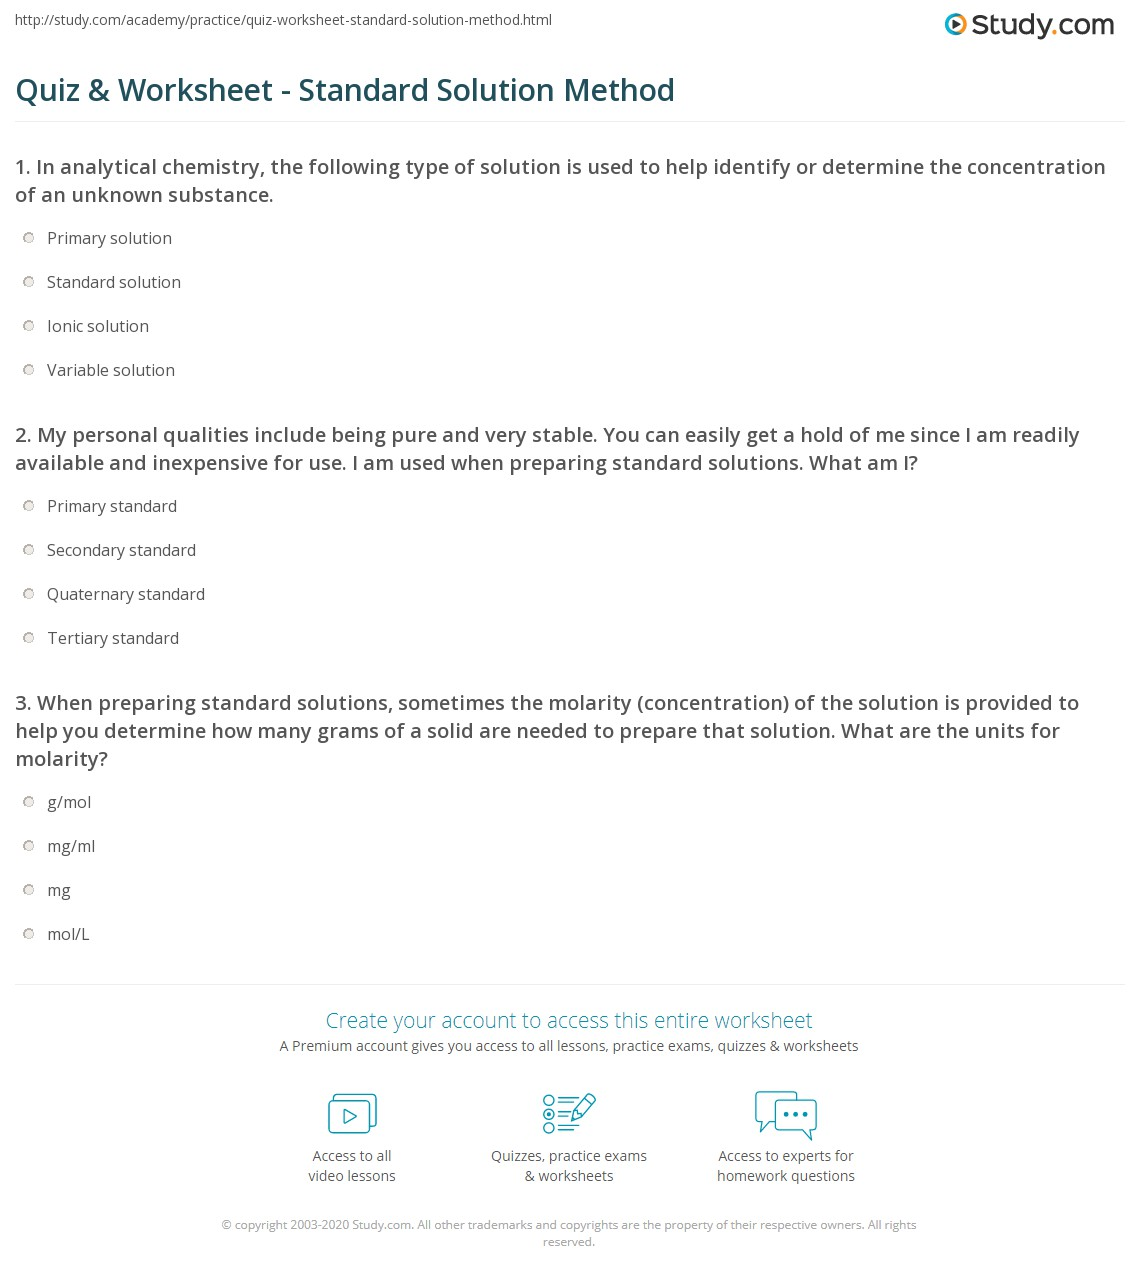 worksheet Solutions Worksheet Answers quiz worksheet standard solution method study com 1 my personal qualities include being pure and very stable you can easily get a hold of me since i am readily available inexpensive for u